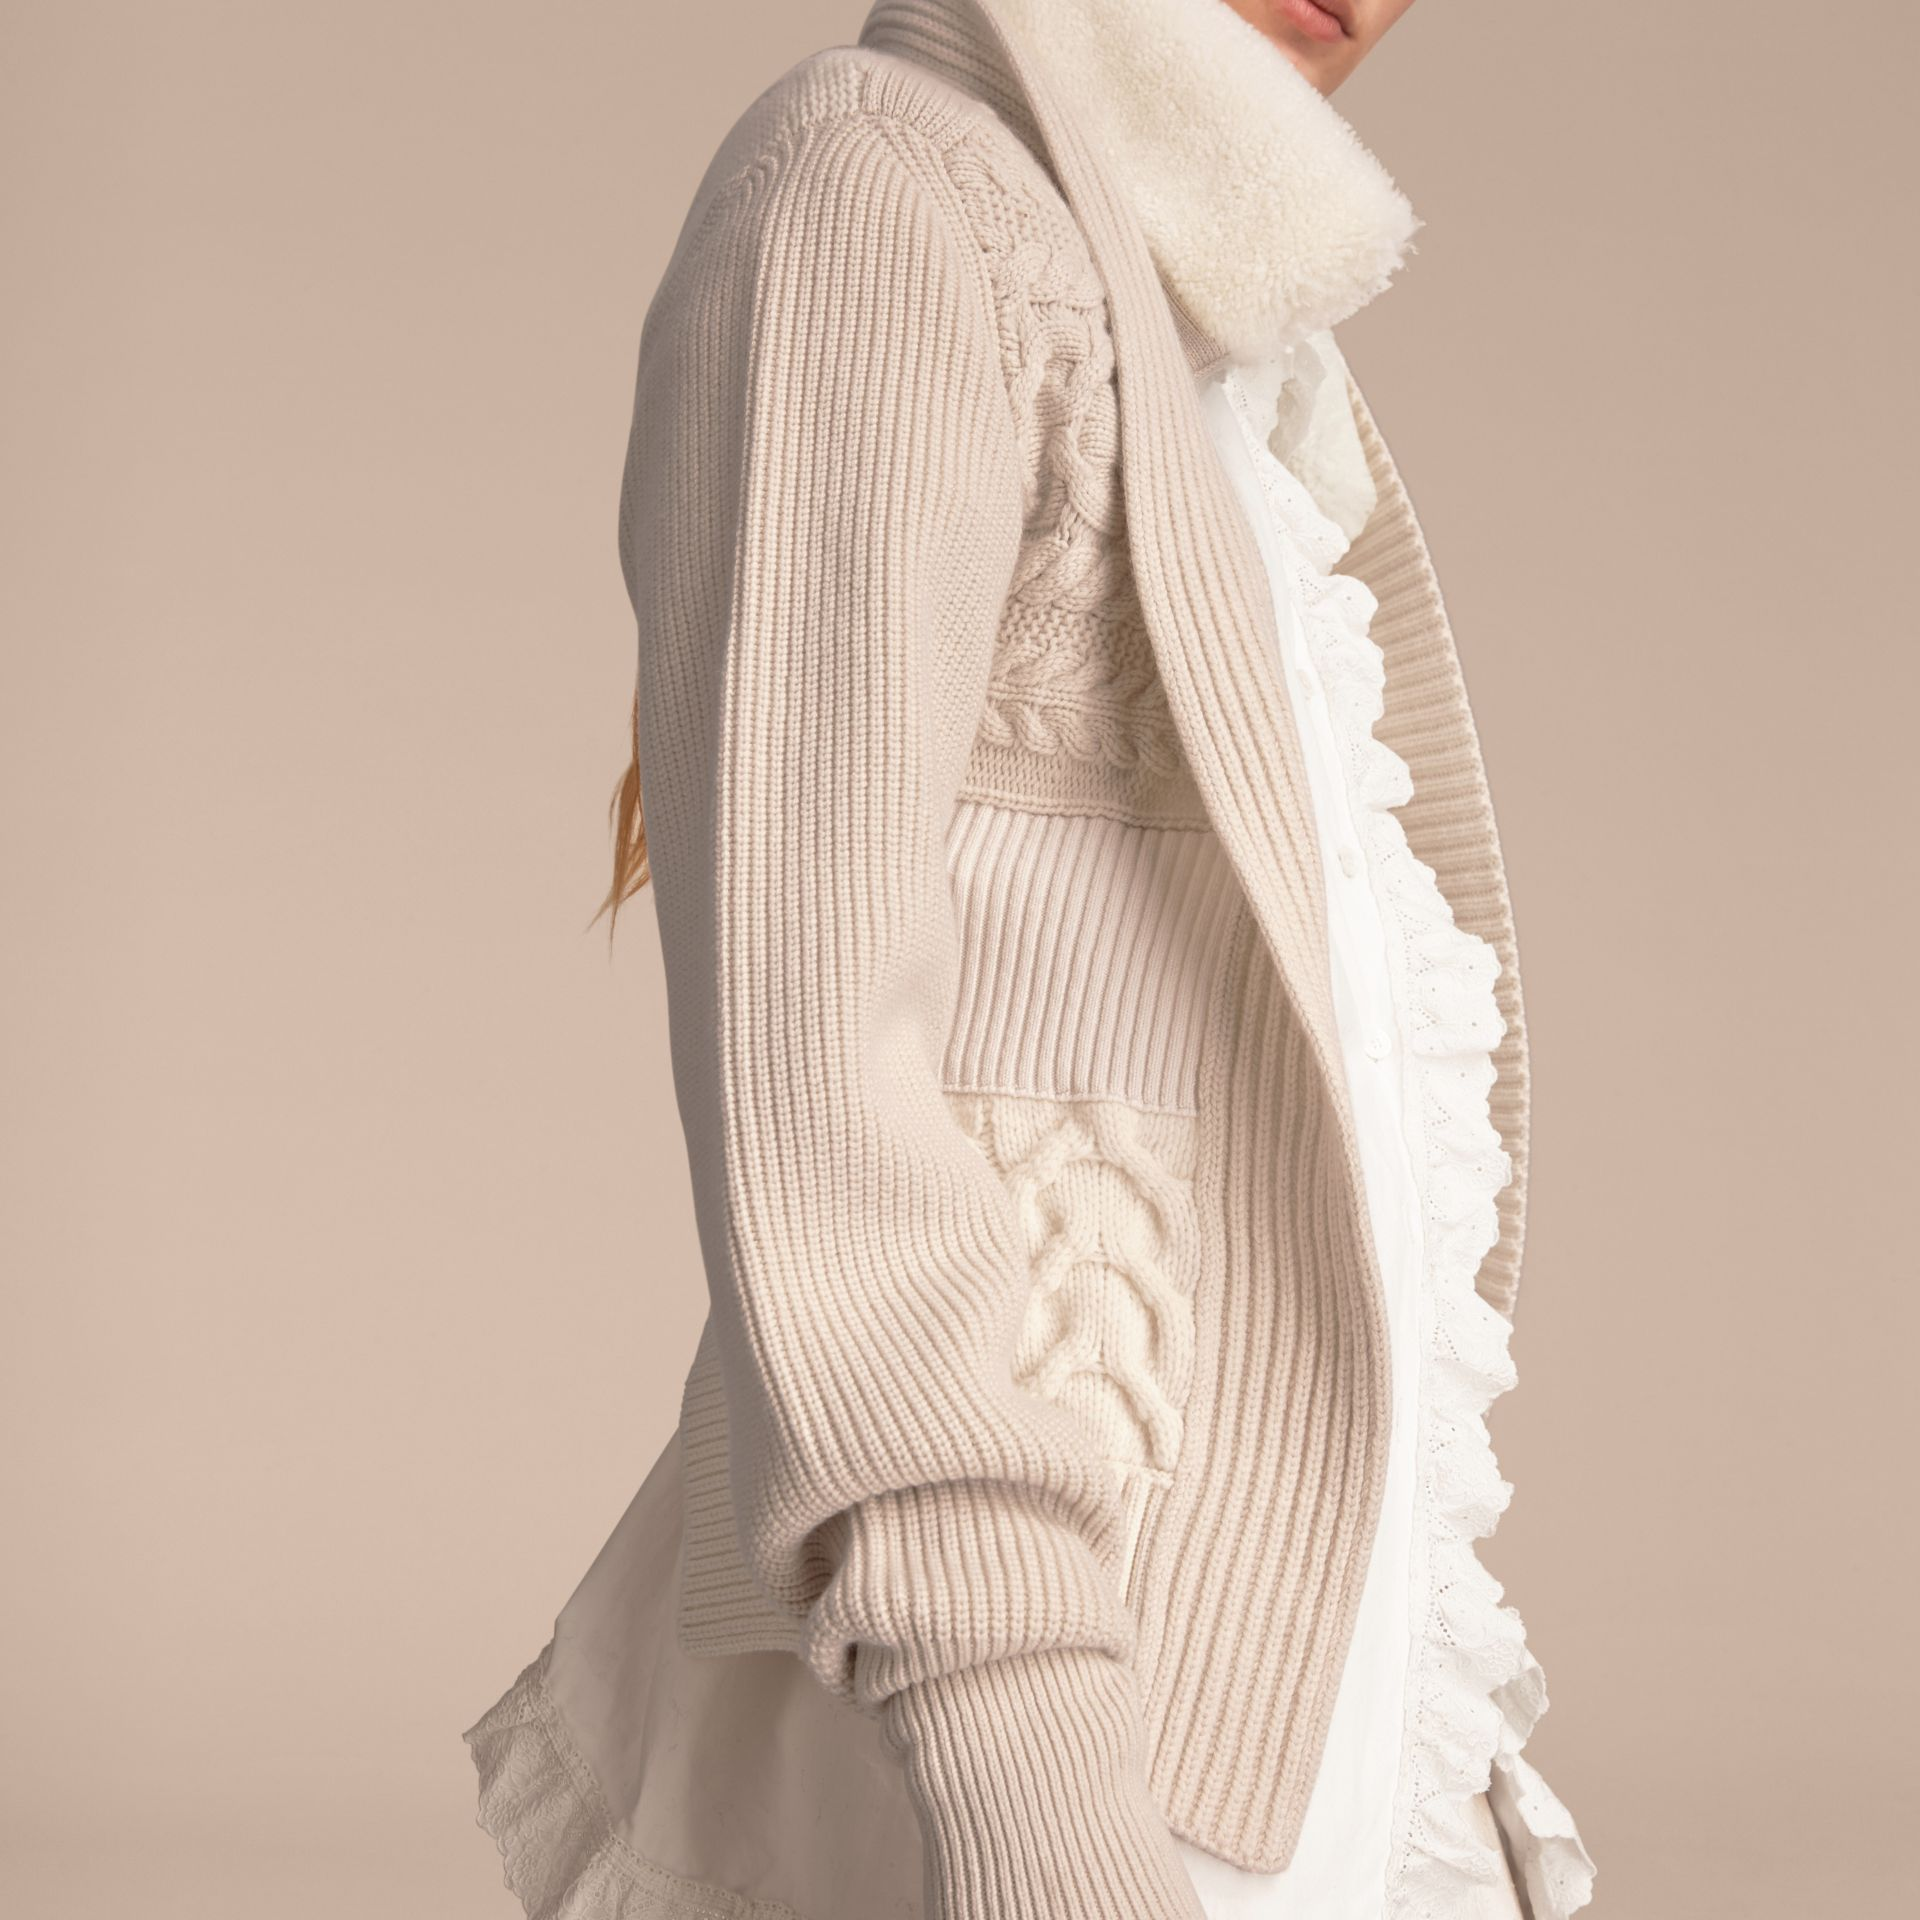 Shearling Collar Knitted Wool Cashmere Jacket in Natural White - Women | Burberry - gallery image 6